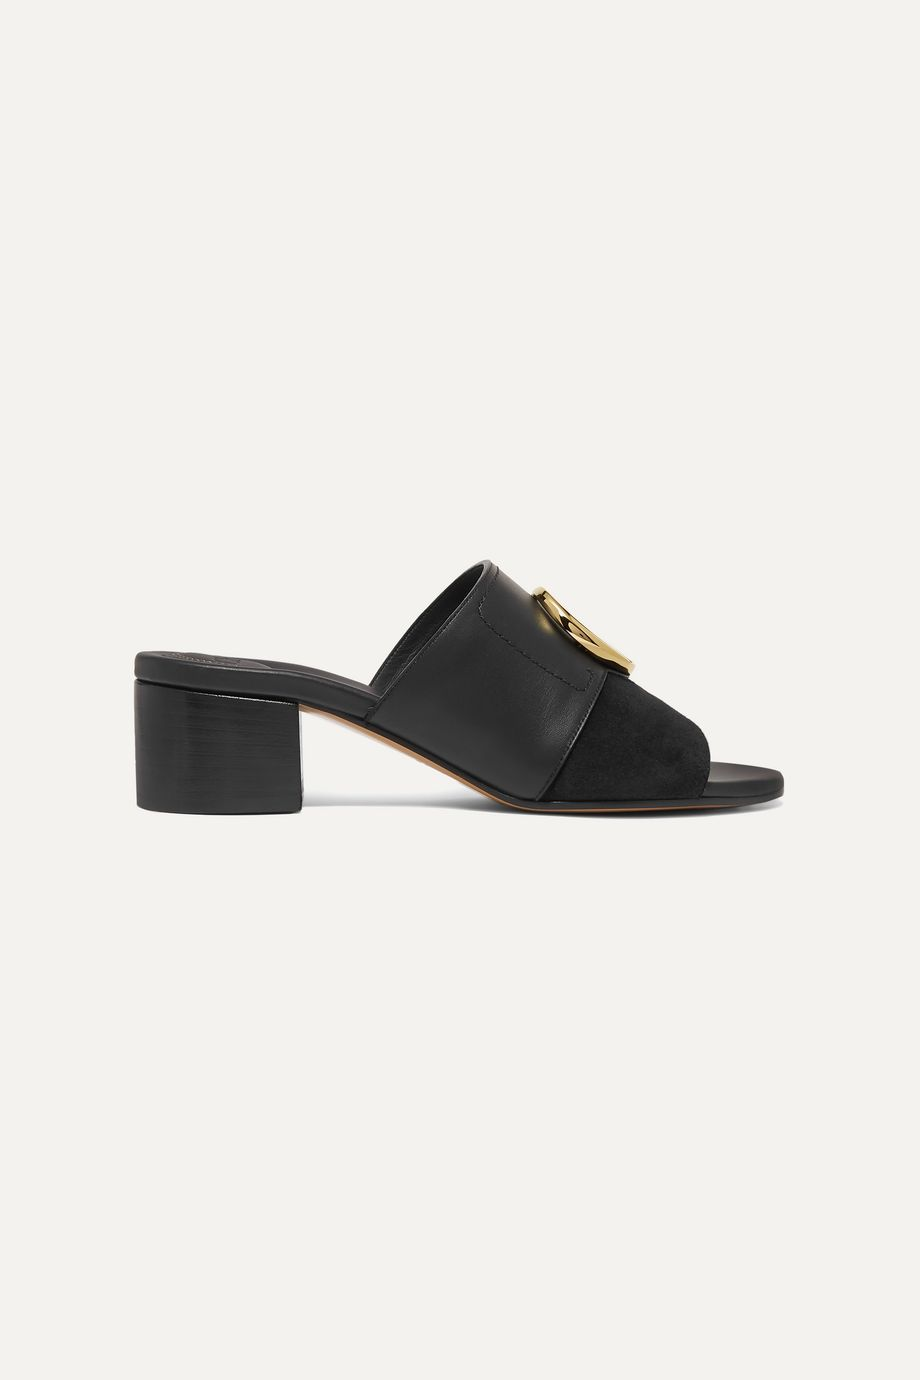 Chloé Chloé C logo-embellished leather and suede mules